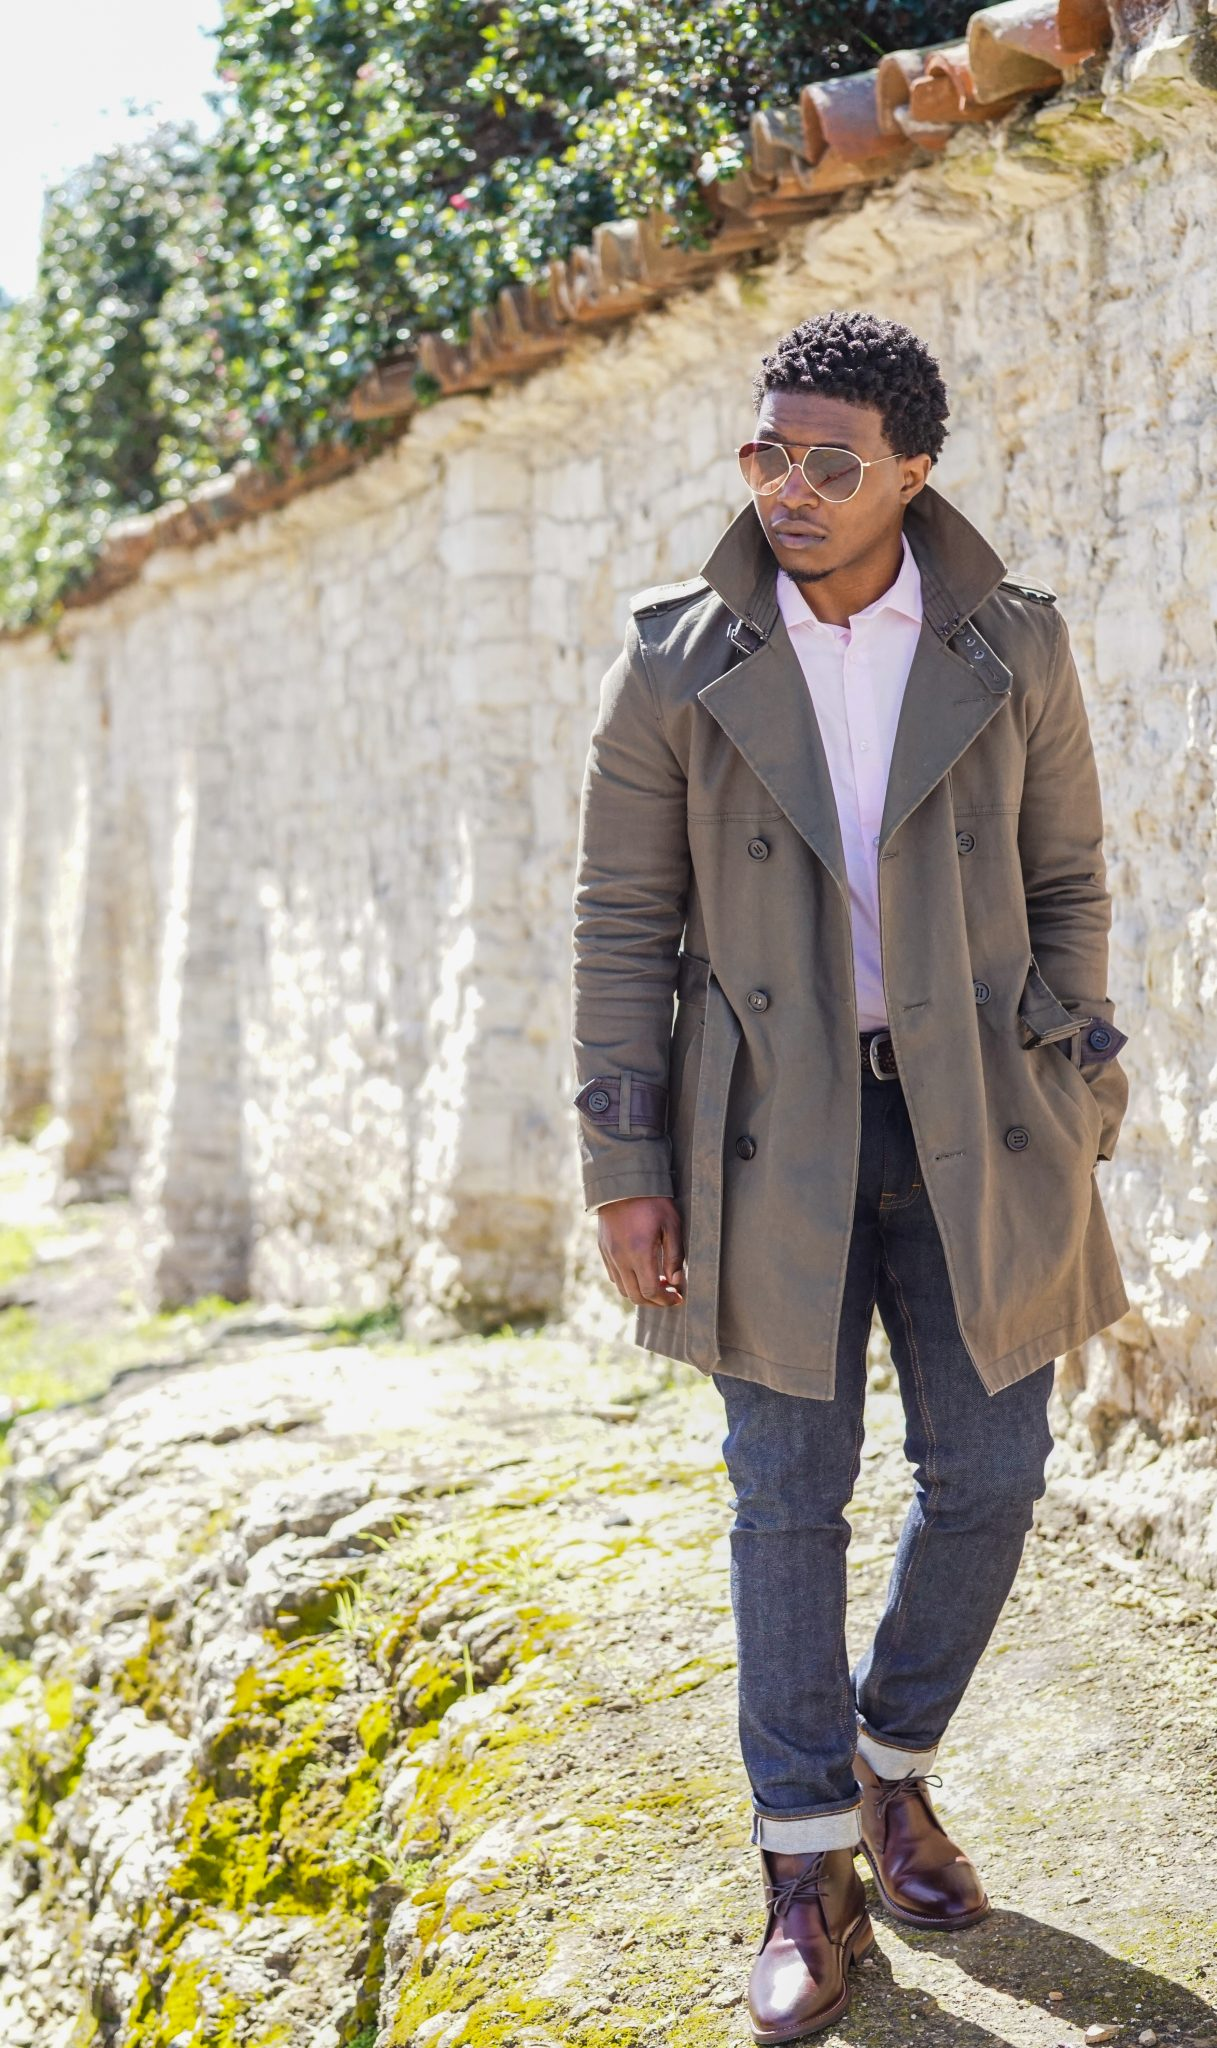 Spring Outerwear: The Trench Coat